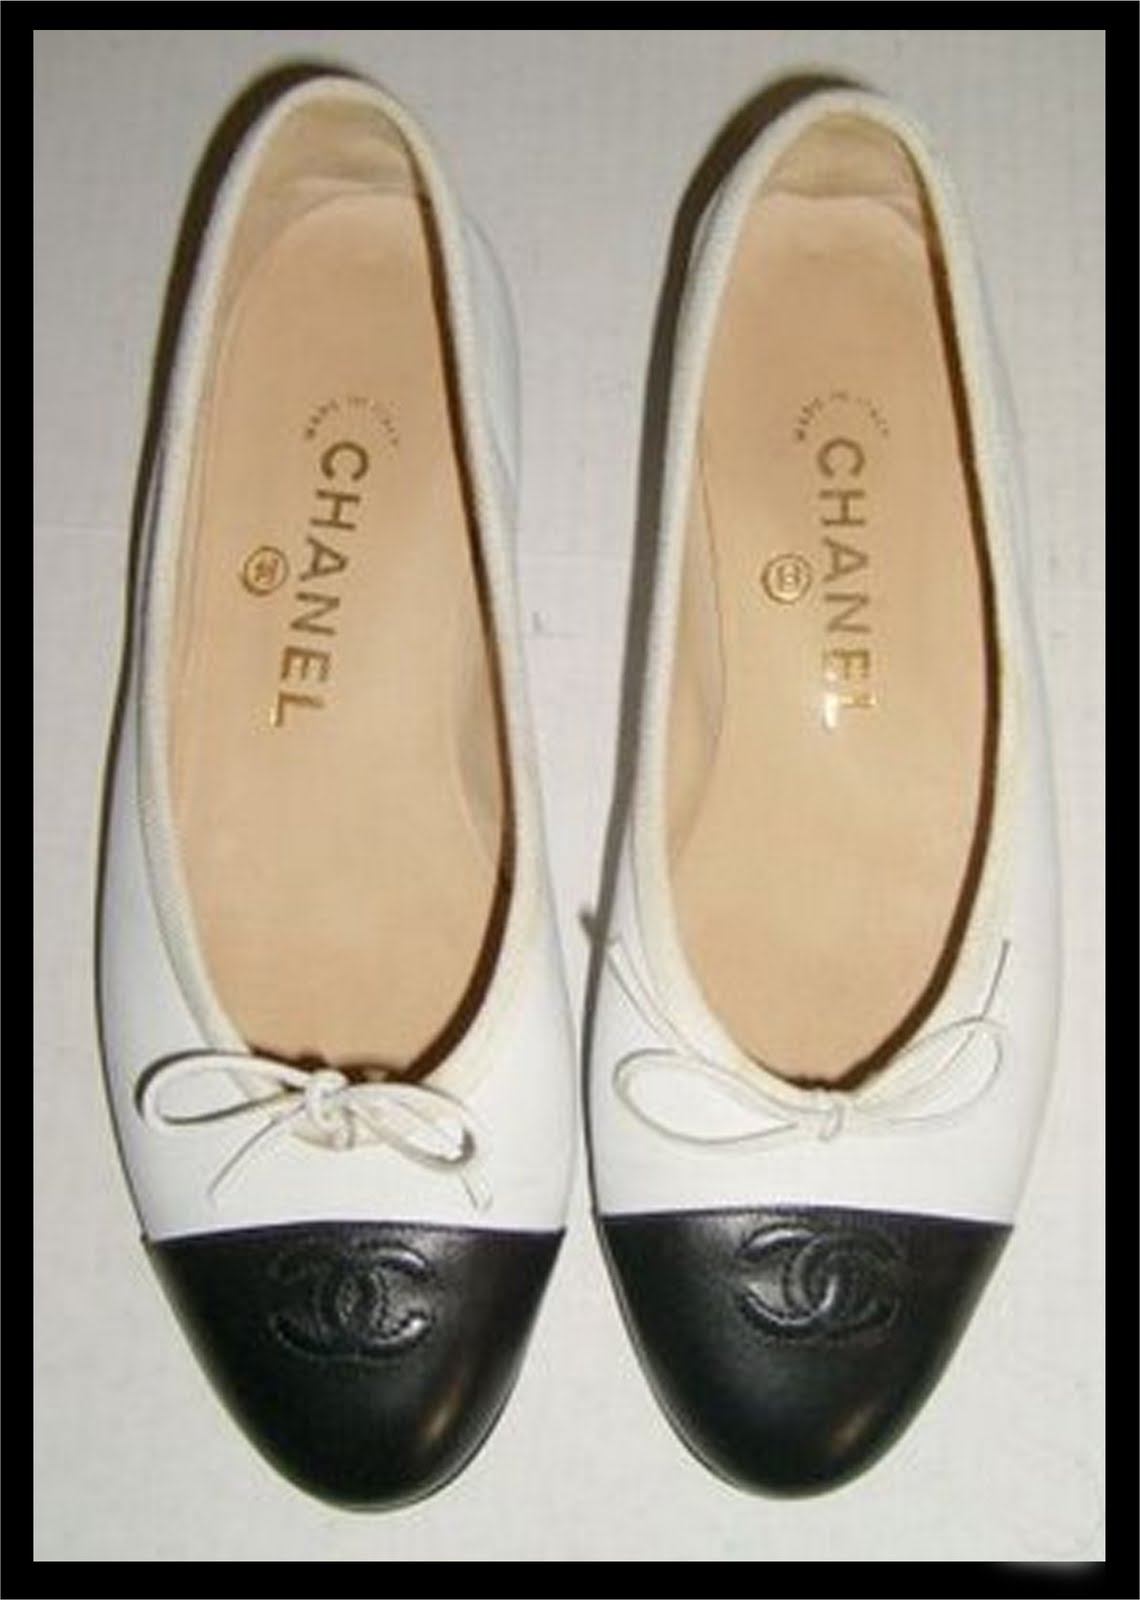 When You Have A Pair Of Chanel Ballet Flats Why Would You Ever Need More Flats? | Fashion ...